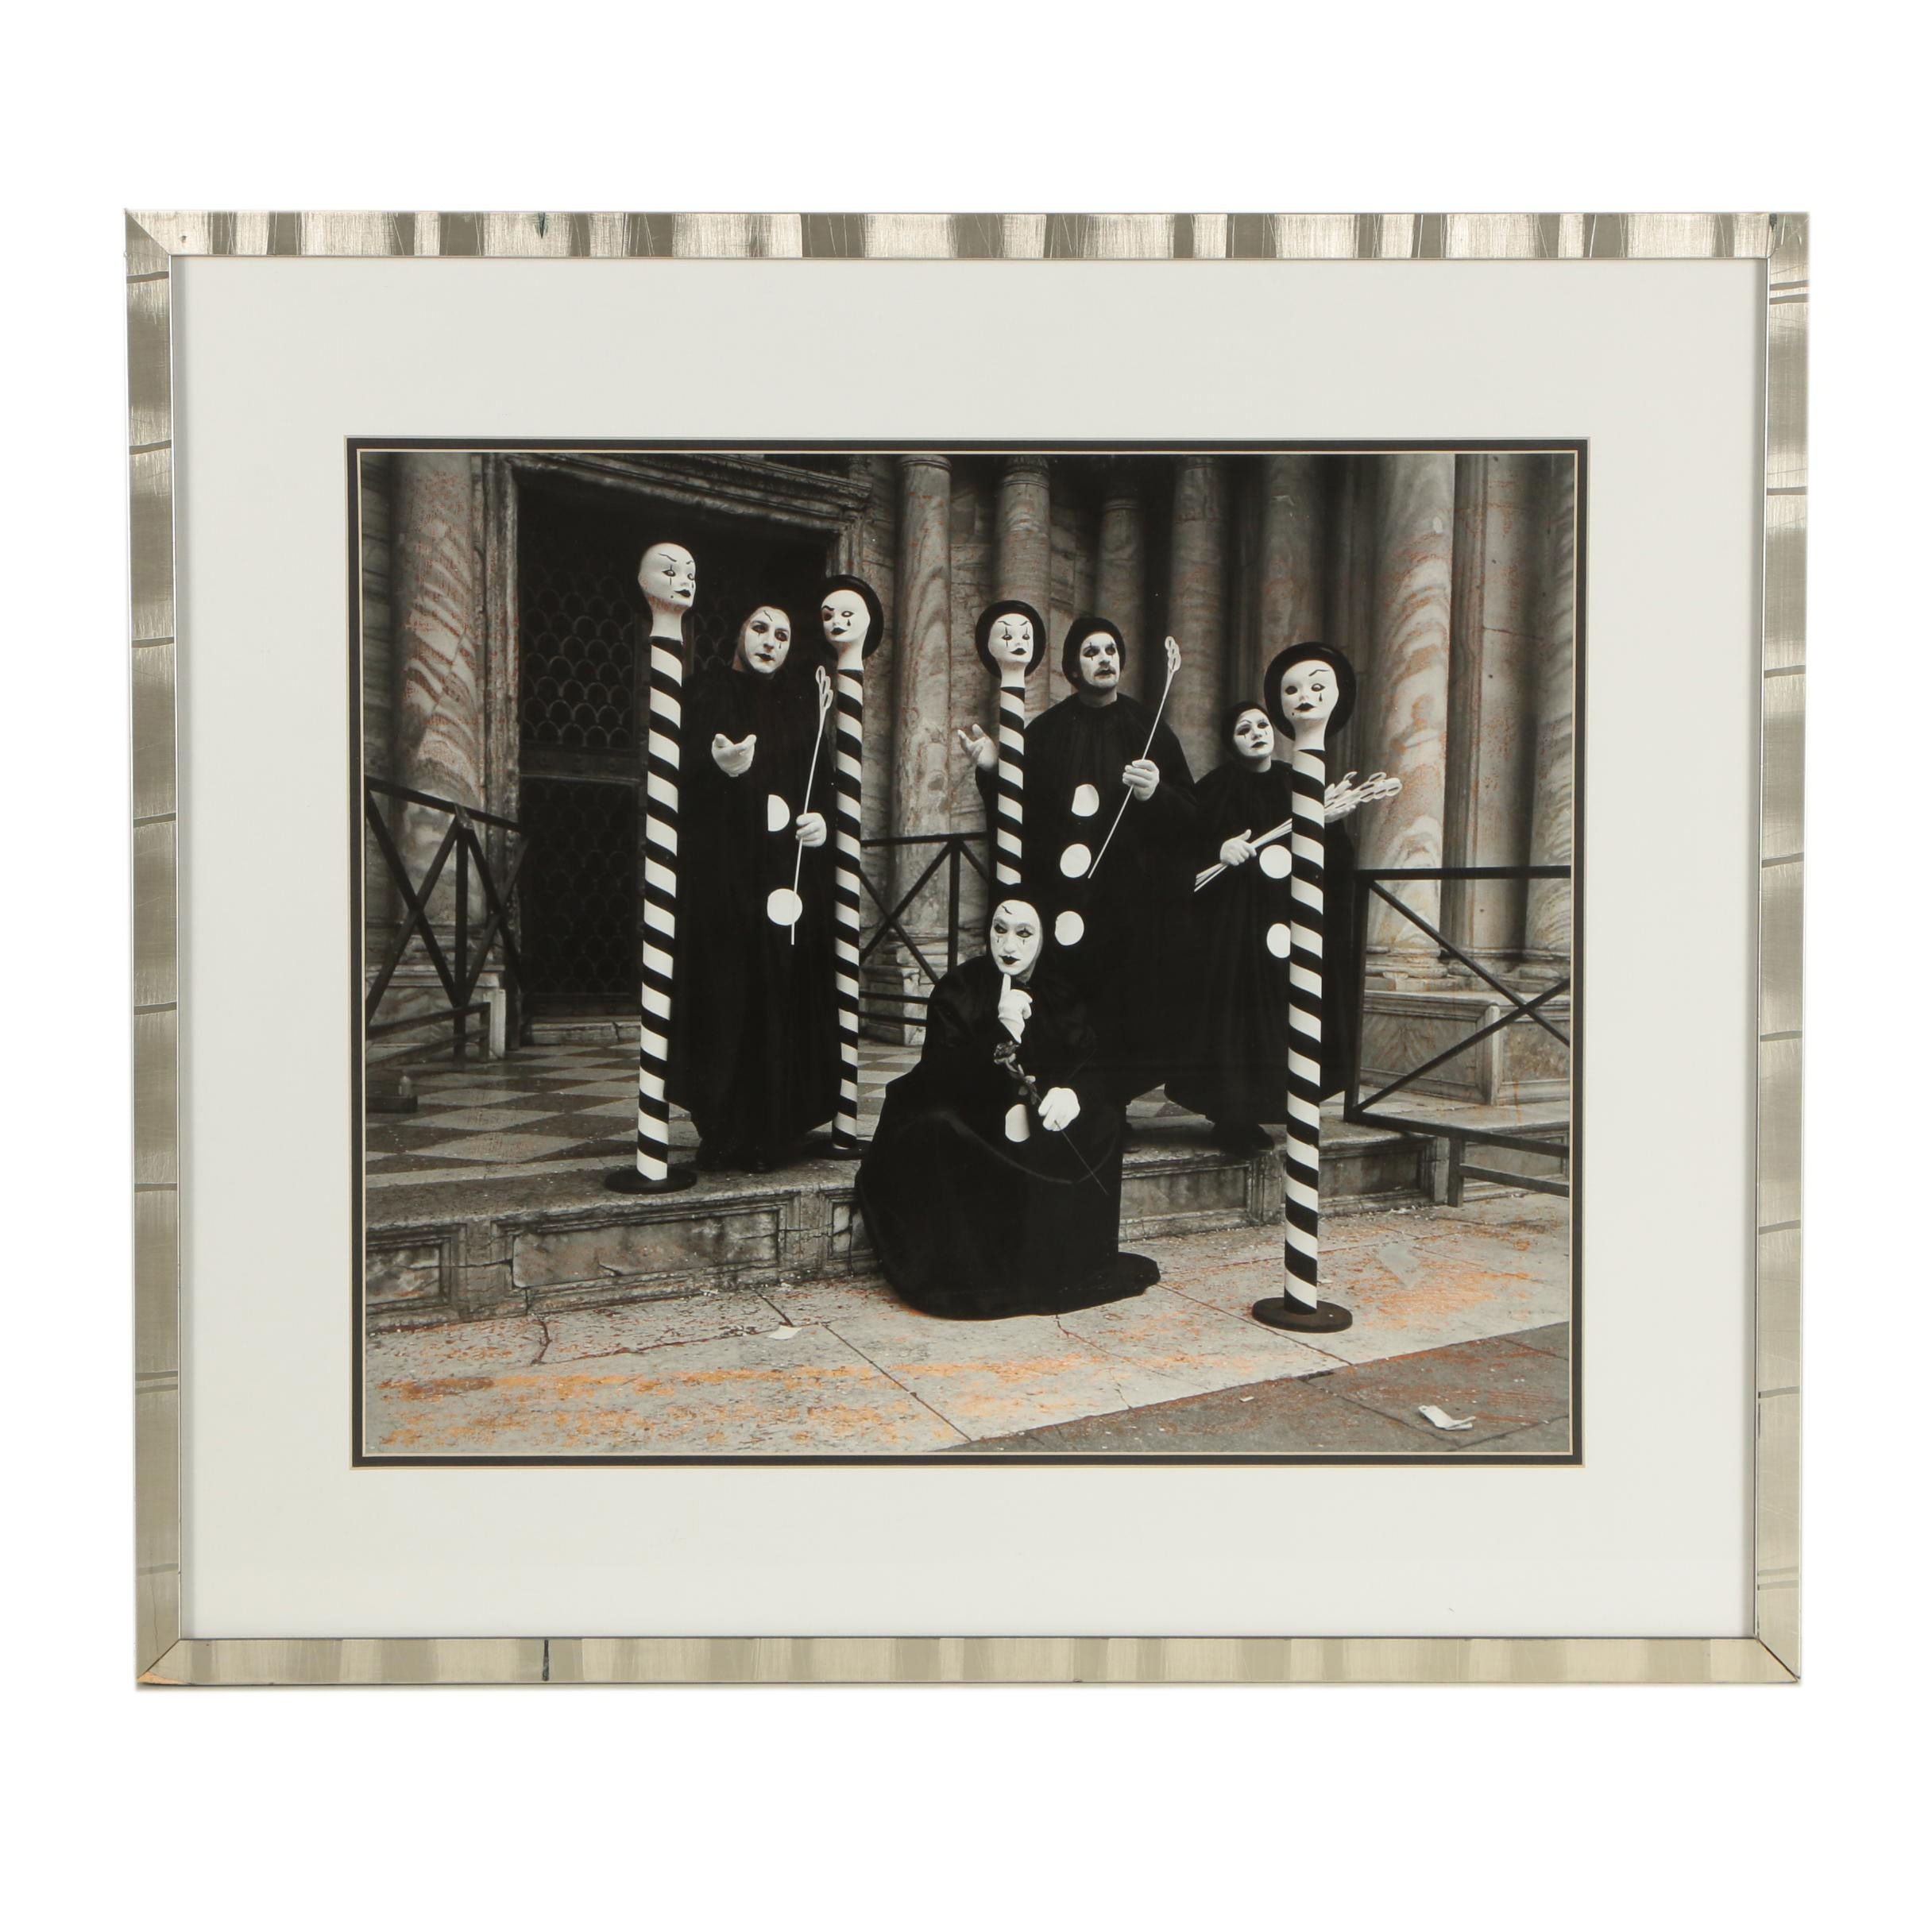 Silver Gelatin Photograph of Mimes